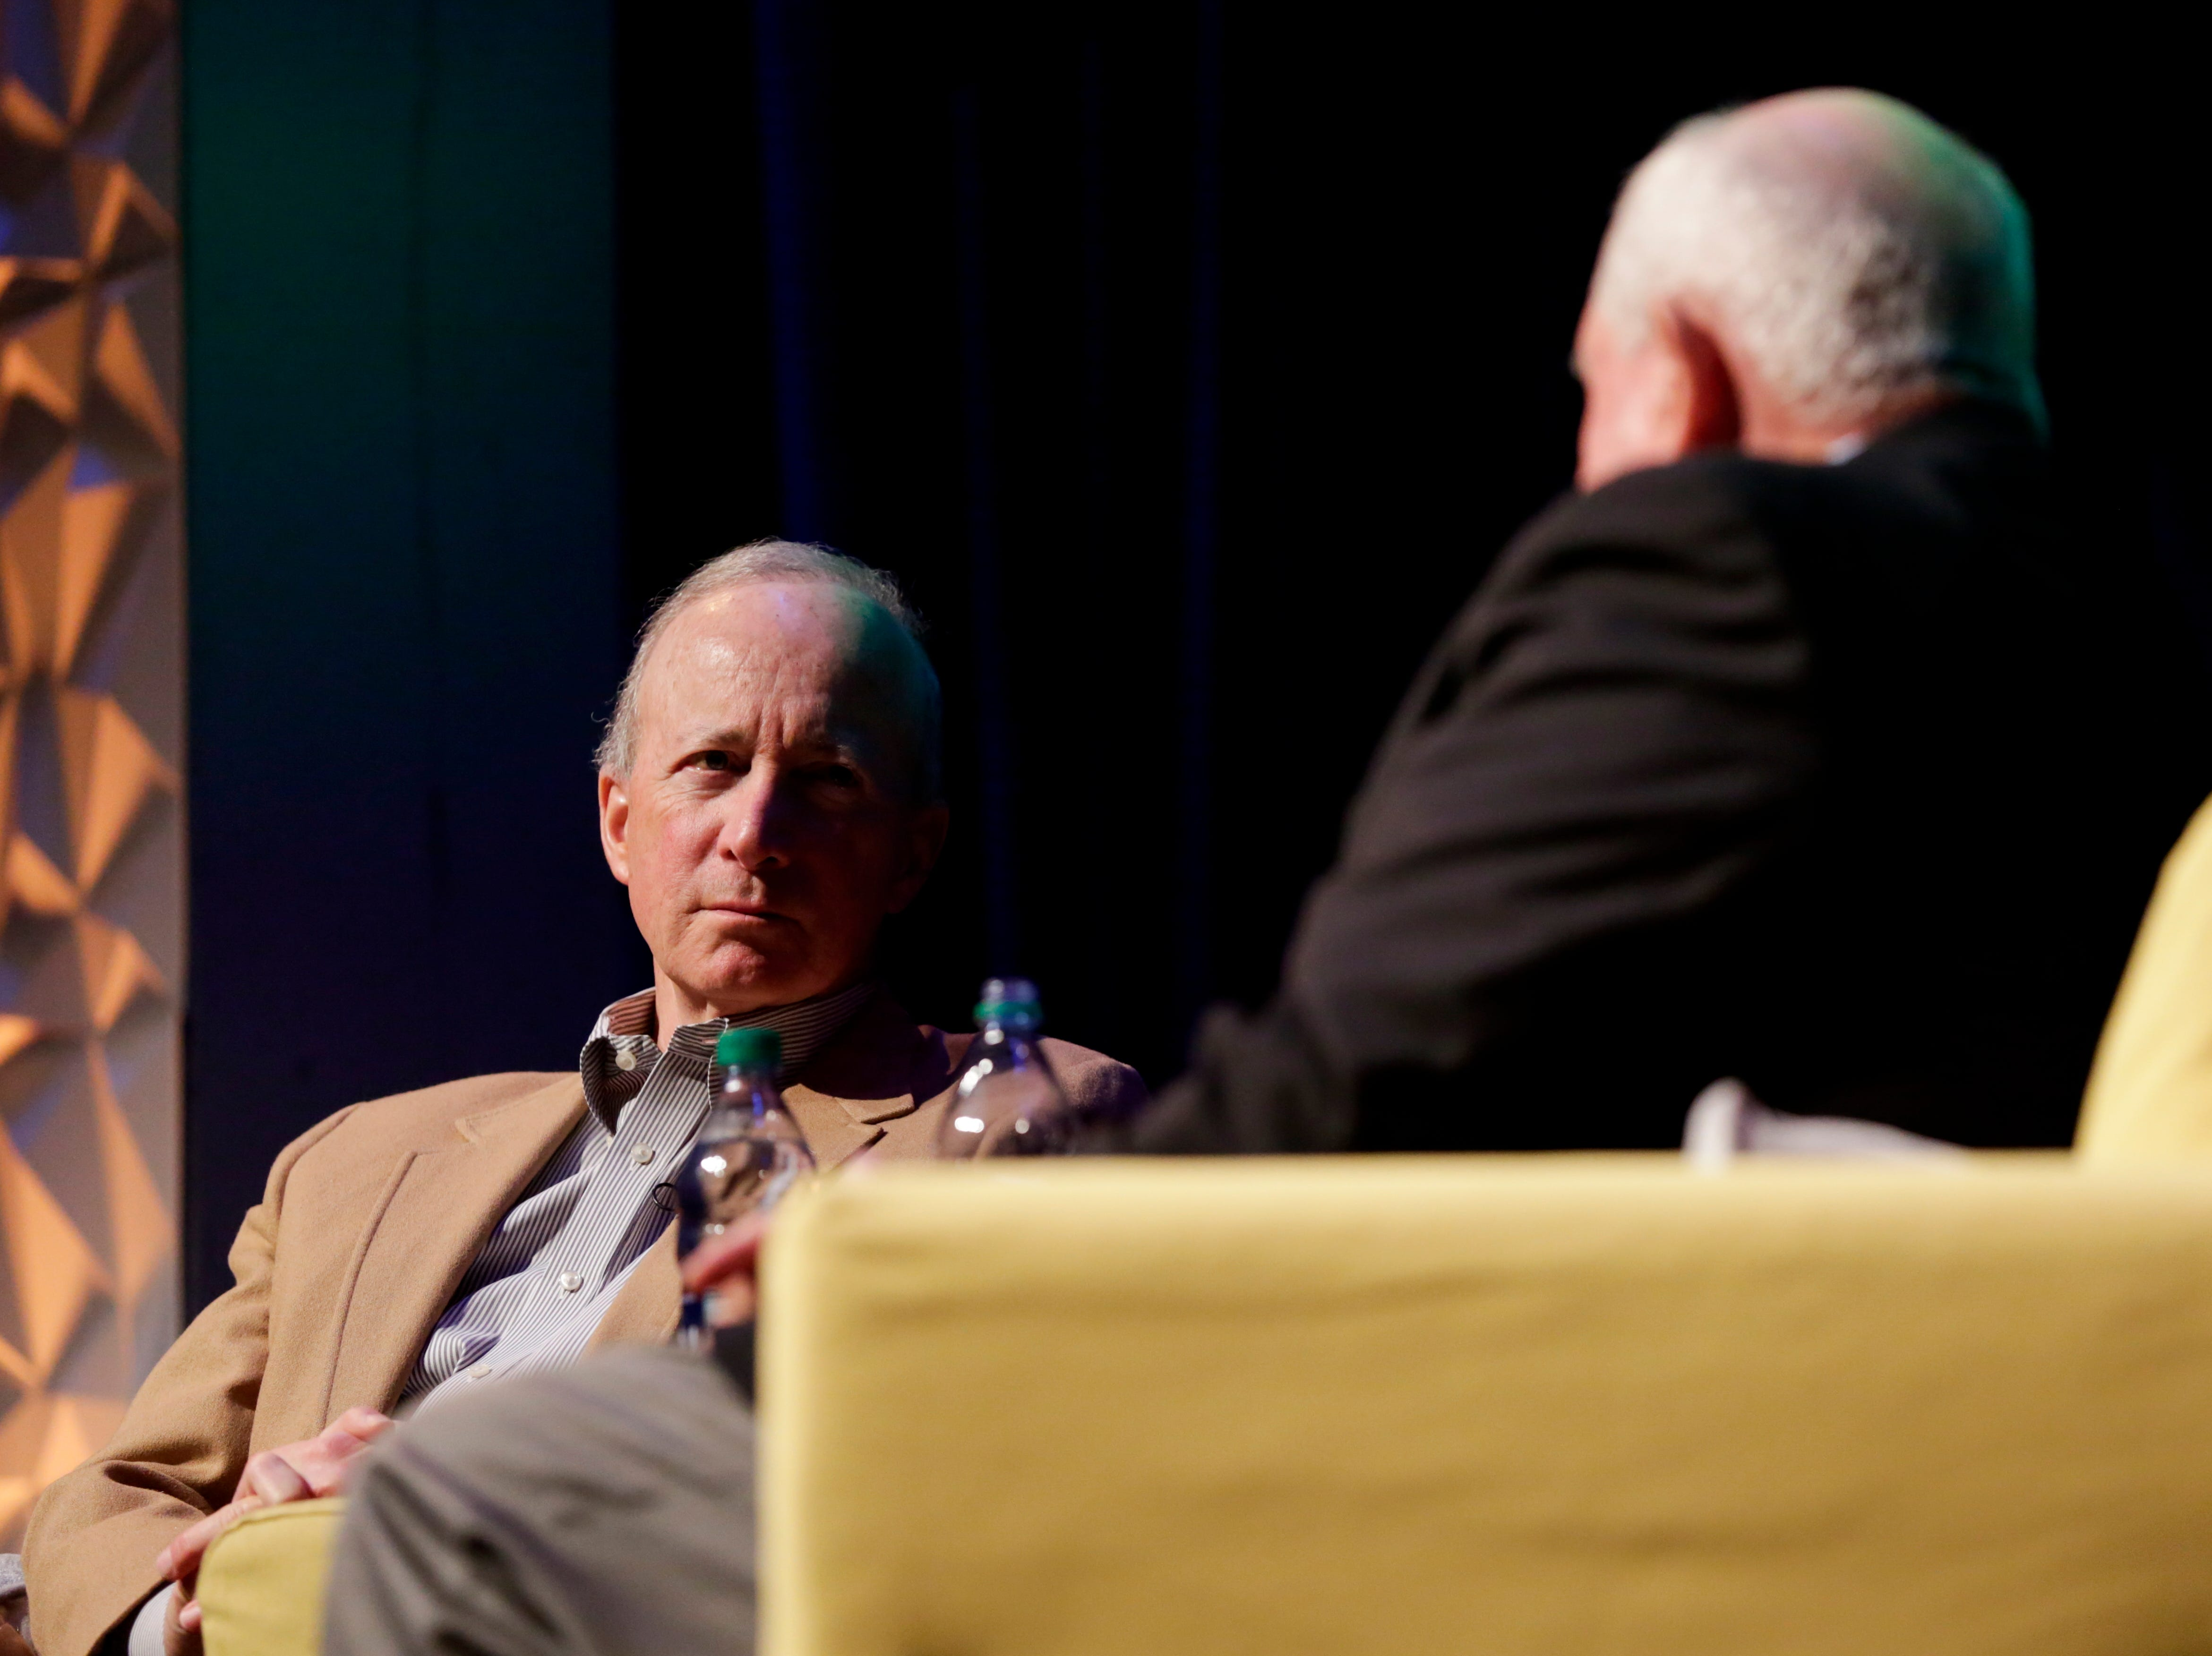 Purdue University president Mitch Daniels listens as U.S. Secretary of Agriculture Sonny Perdue speaks during a Ag Week Q&A conversation, Tuesday, April 2, 2019, at Purdue University in West Lafayette.